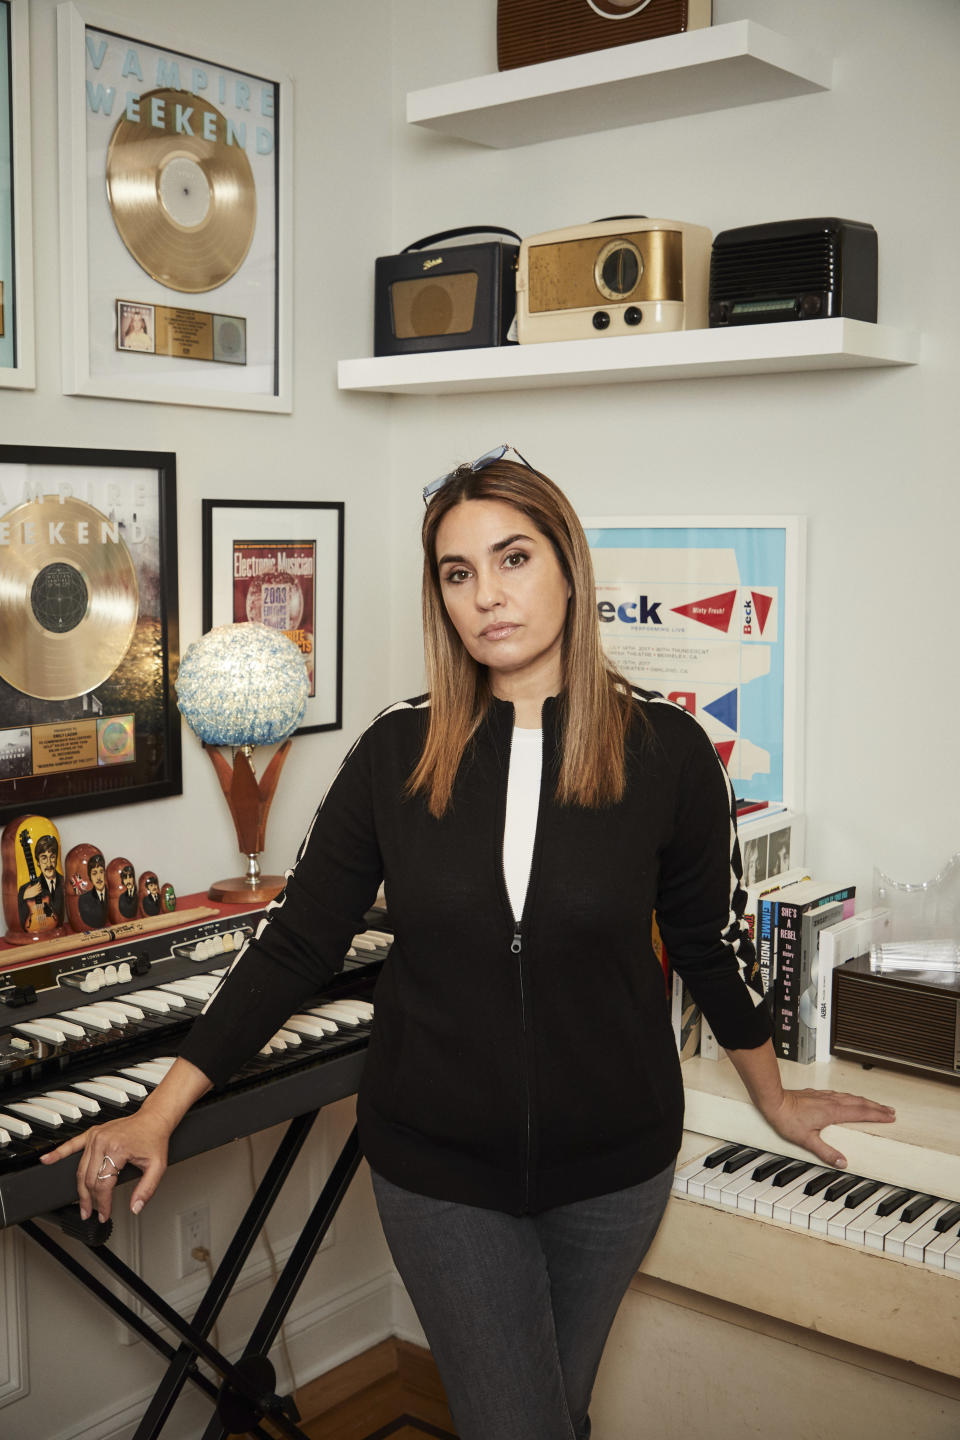 Mastering engineer Emily Lazar poses for a portrait in New York on Dec. 28, 2020. Lazar is nominated three times in the album of the year category thanks to her work on albums from HAIM, Coldplay and Jacob Collier. The 63rd Annual Grammy Awards will be held on March 14. (Photo by Matt Licari/Invision/AP)